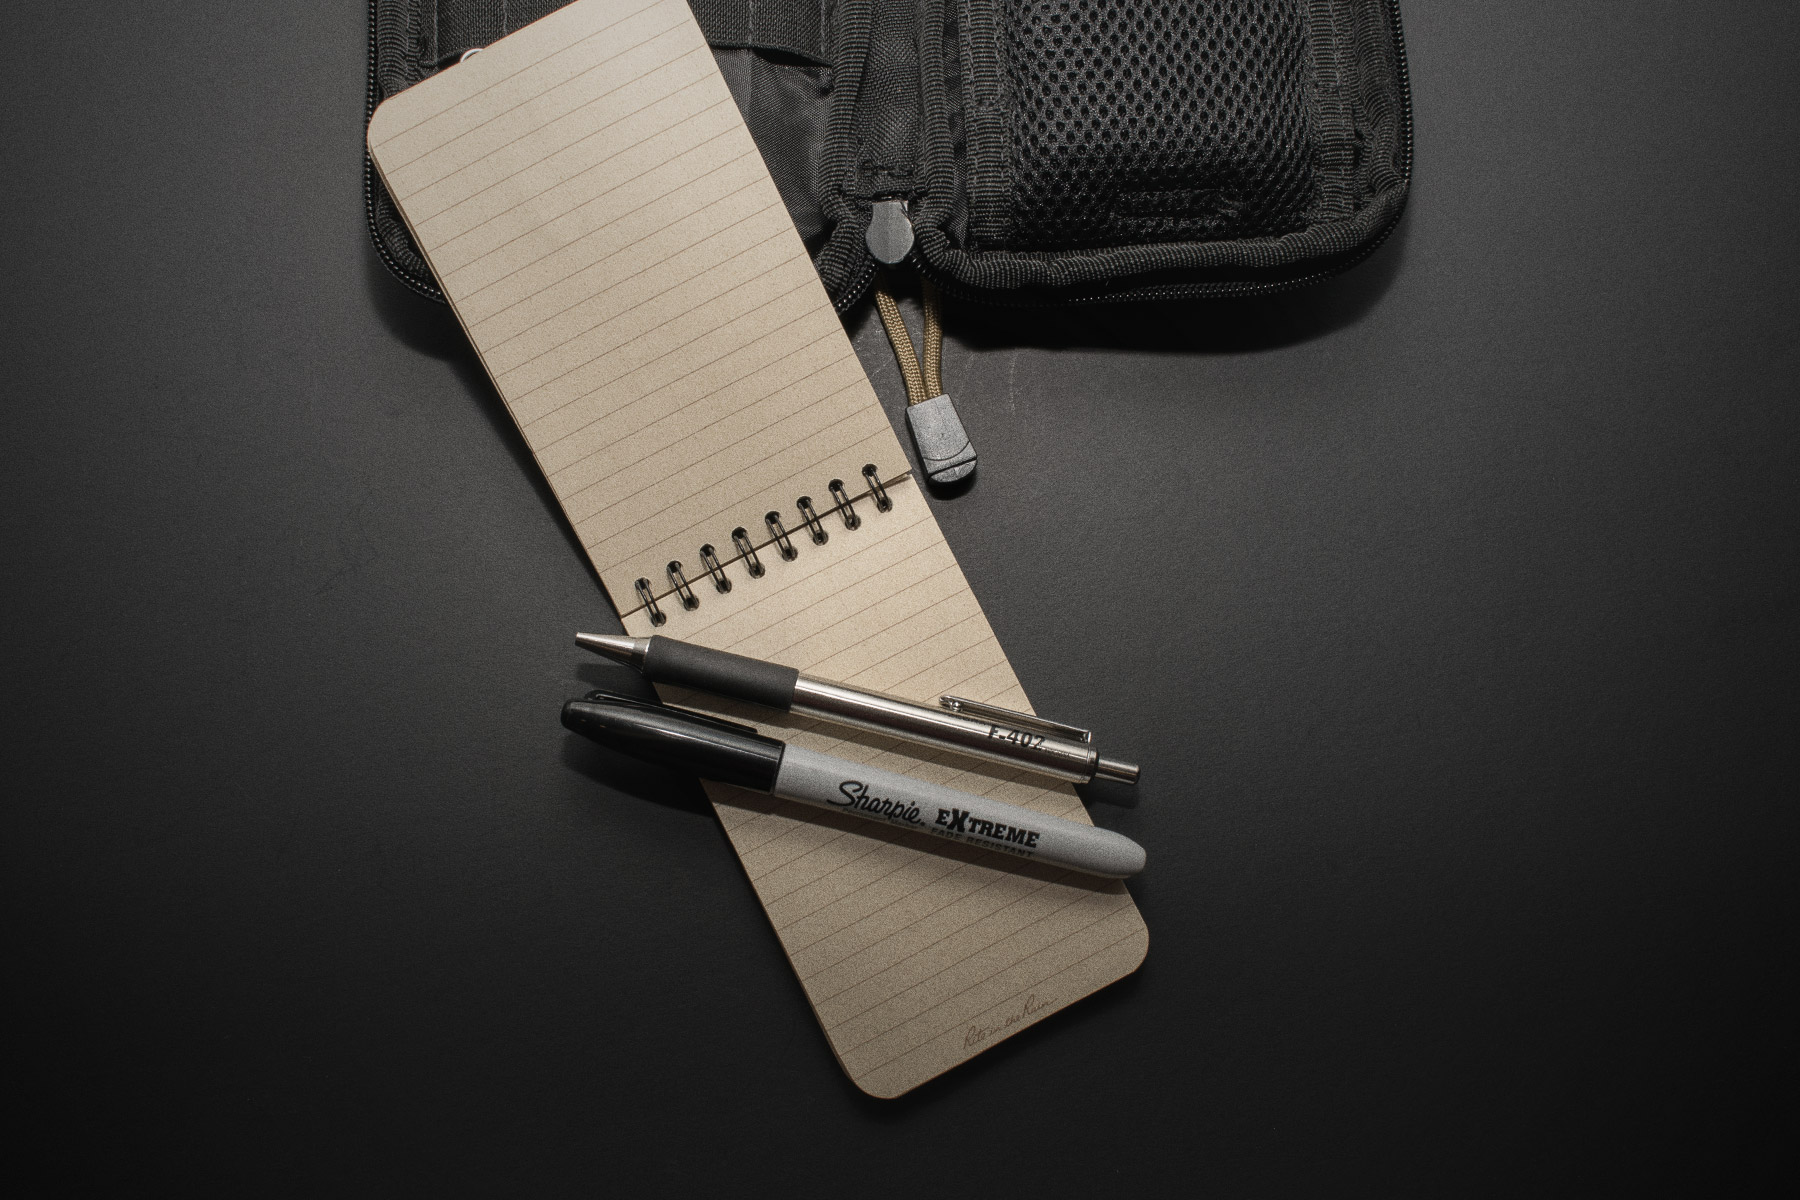 Everyday Carry Notebook and pen